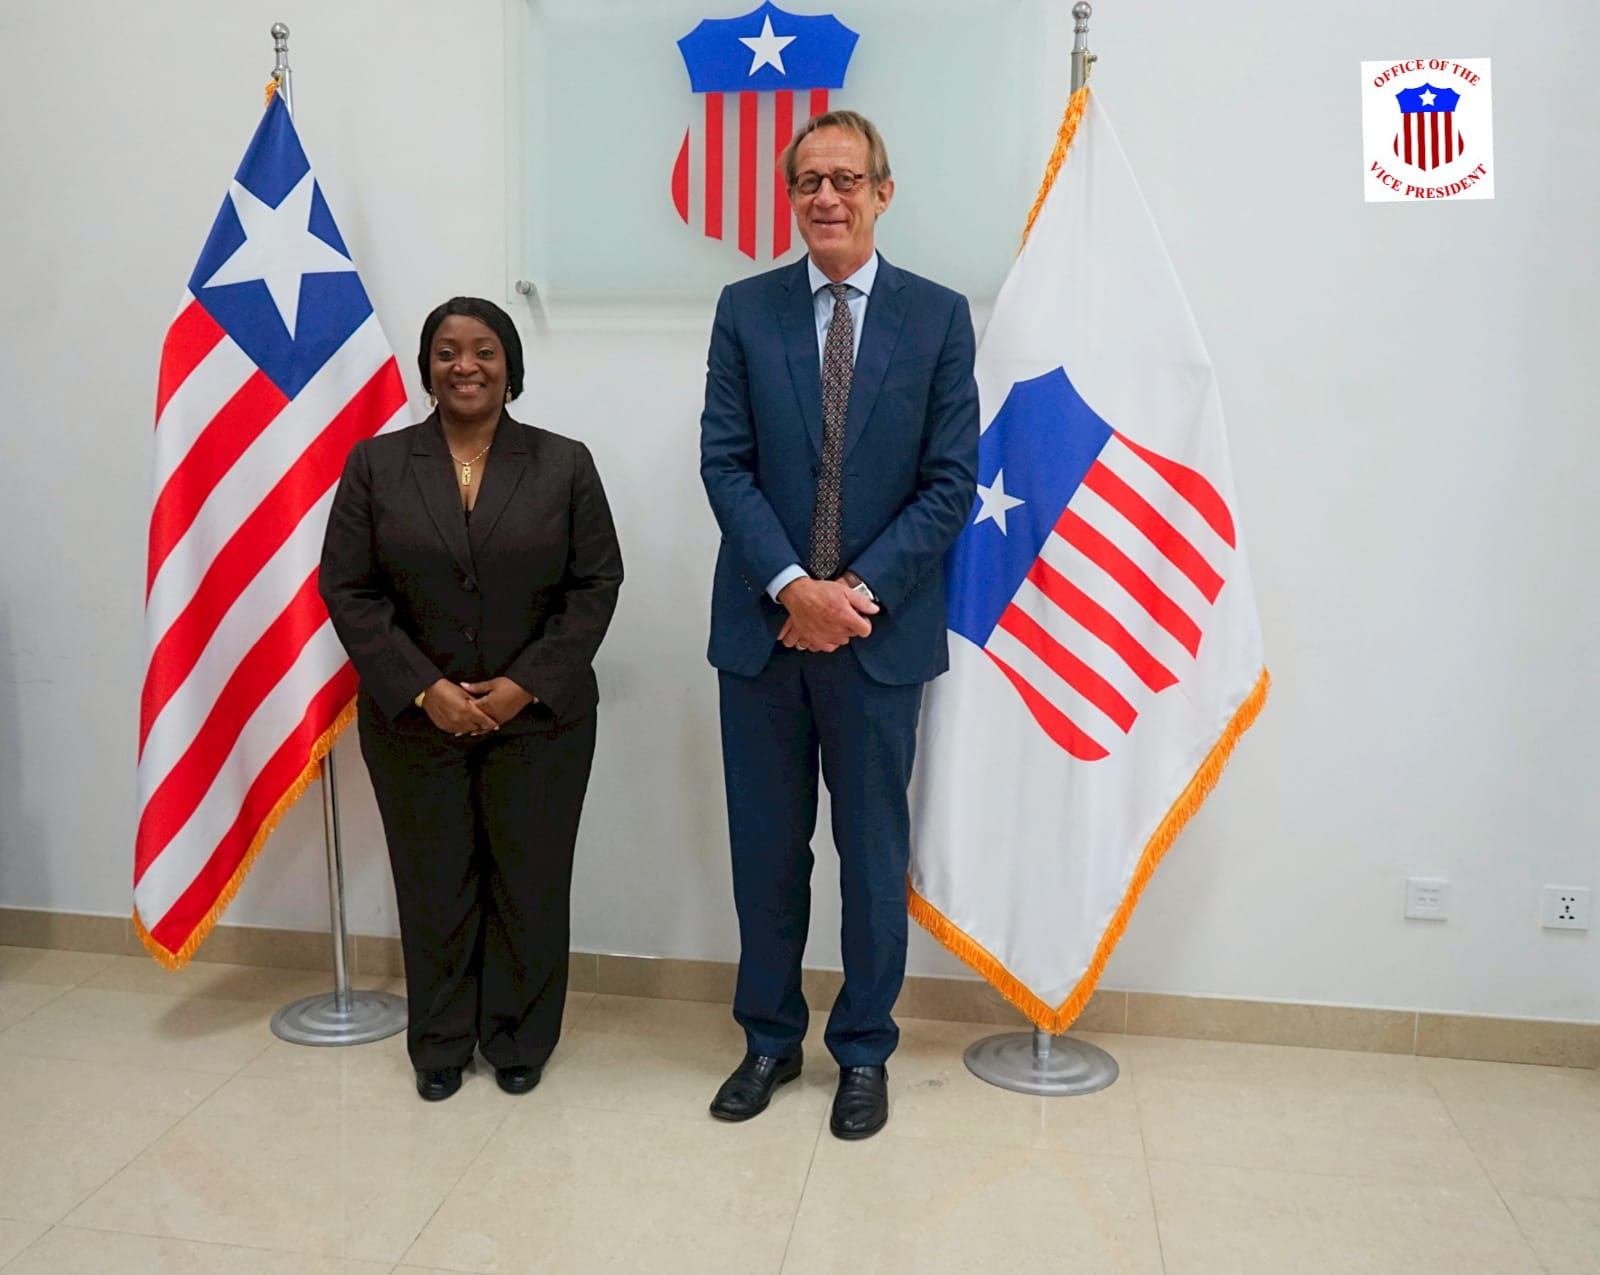 Resident Coordinator of the UN in Liberia Holds Meeting with the Liberian Vice President